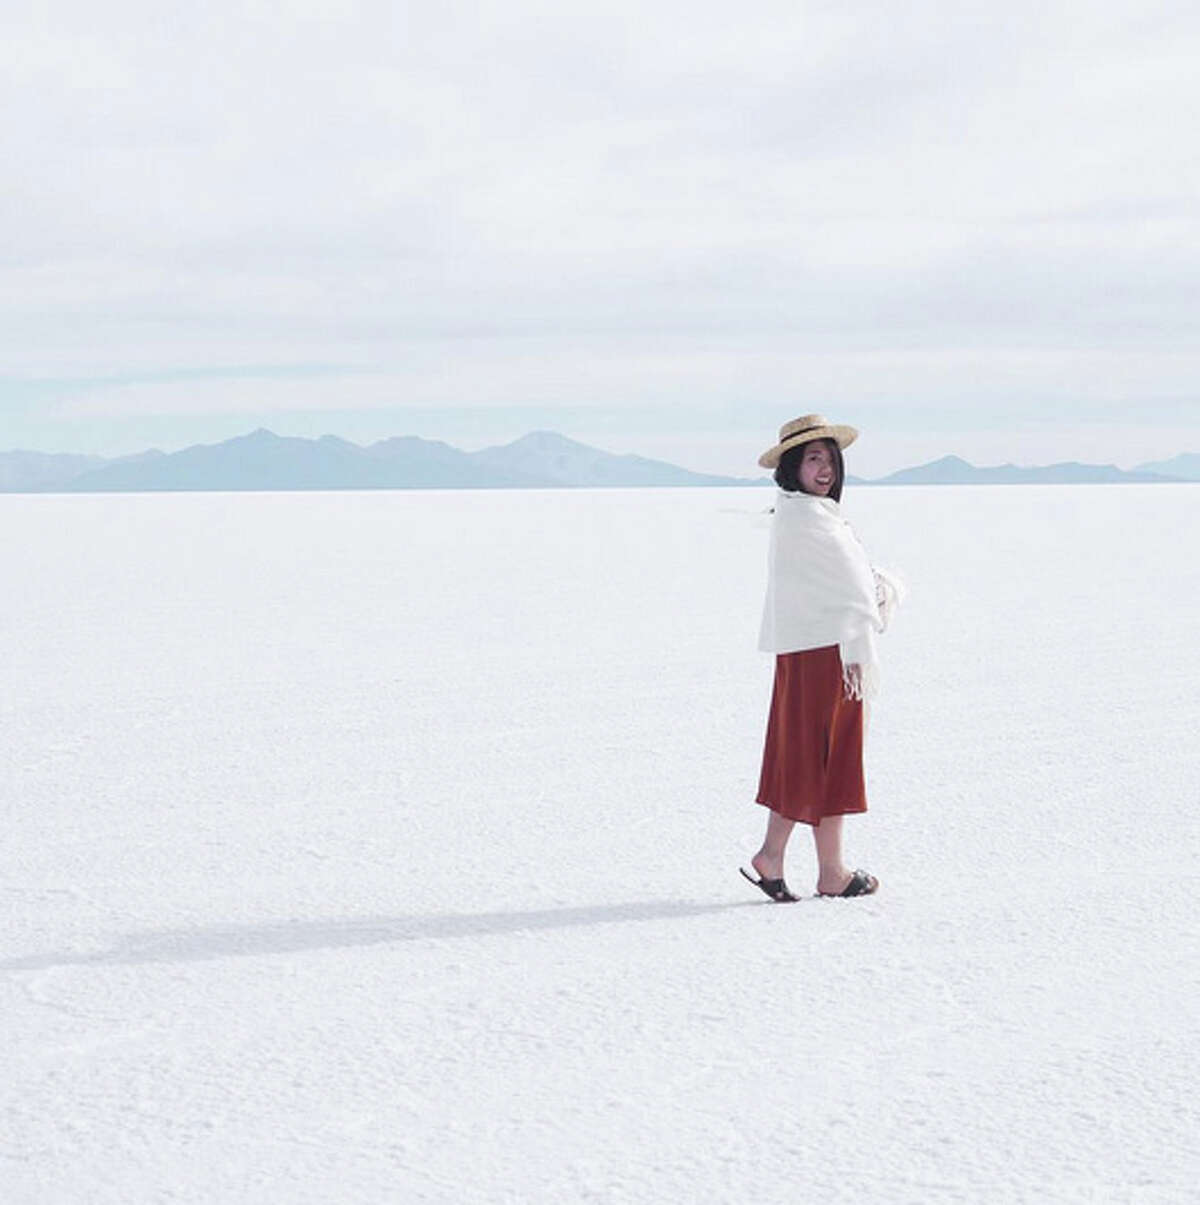 TJ Lee walks the Salt Flats in Bolivia. Lee quit her tech job and embarked on a journey around the world. Followers can keep up with her travels via social media.